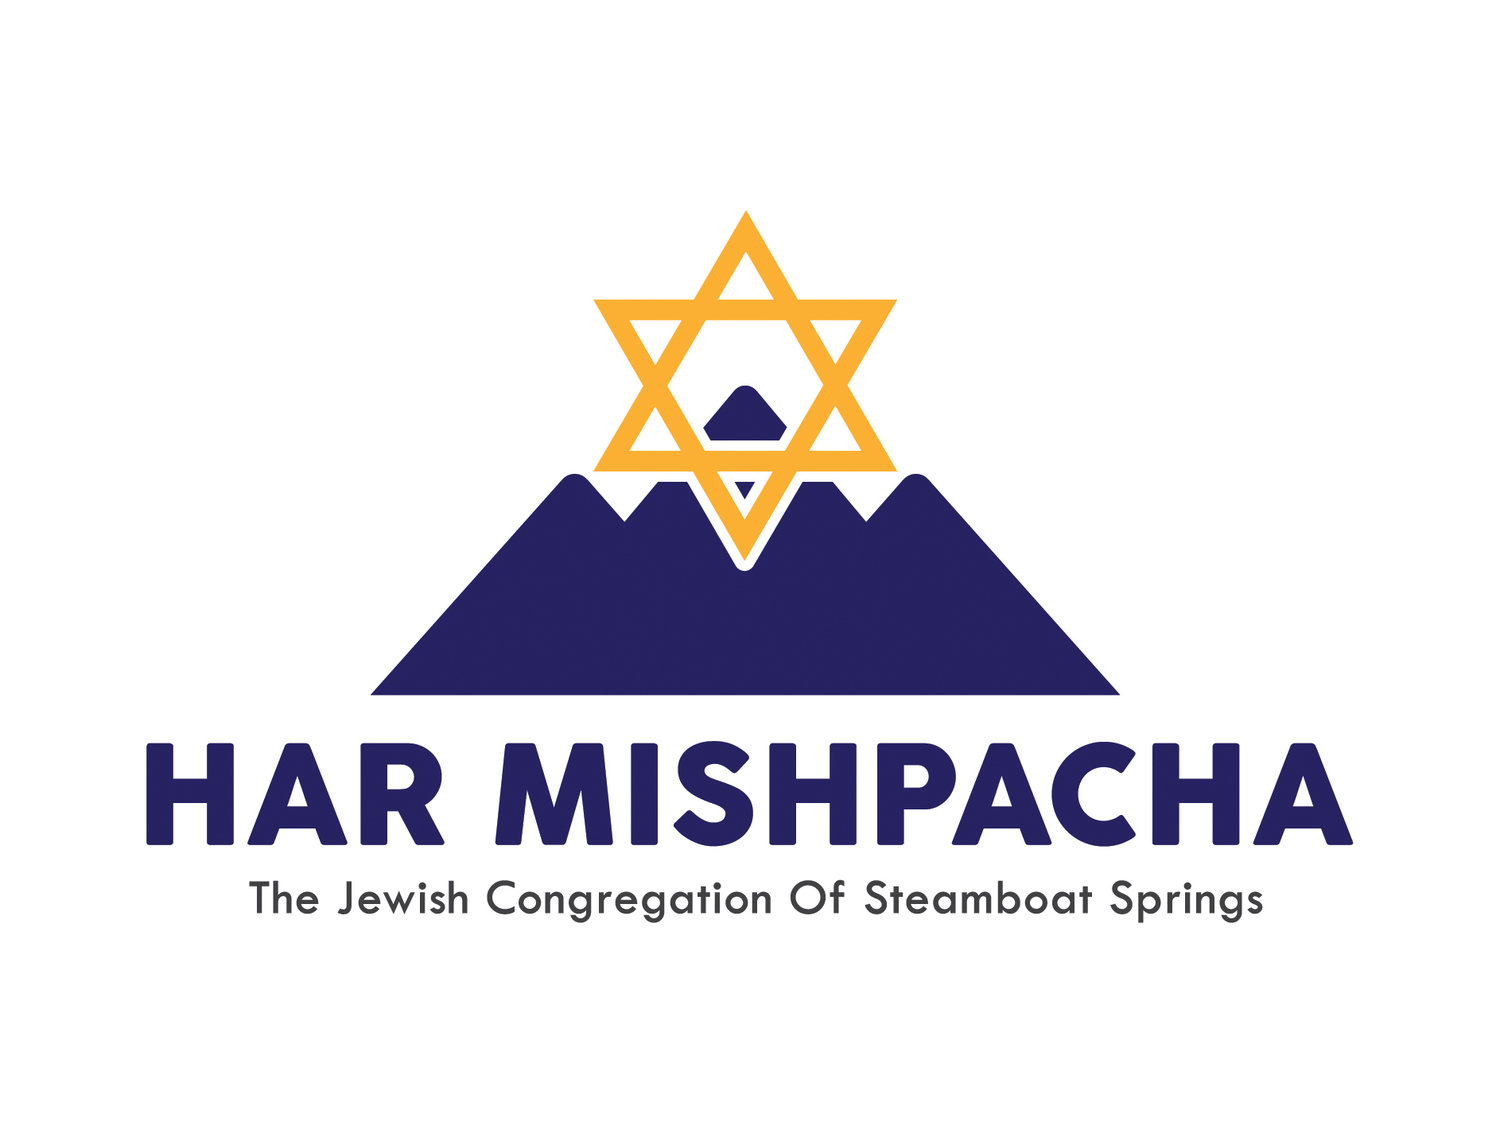 Contact The Jewish Congregation of Steamboat Springs — Har Mishpacha